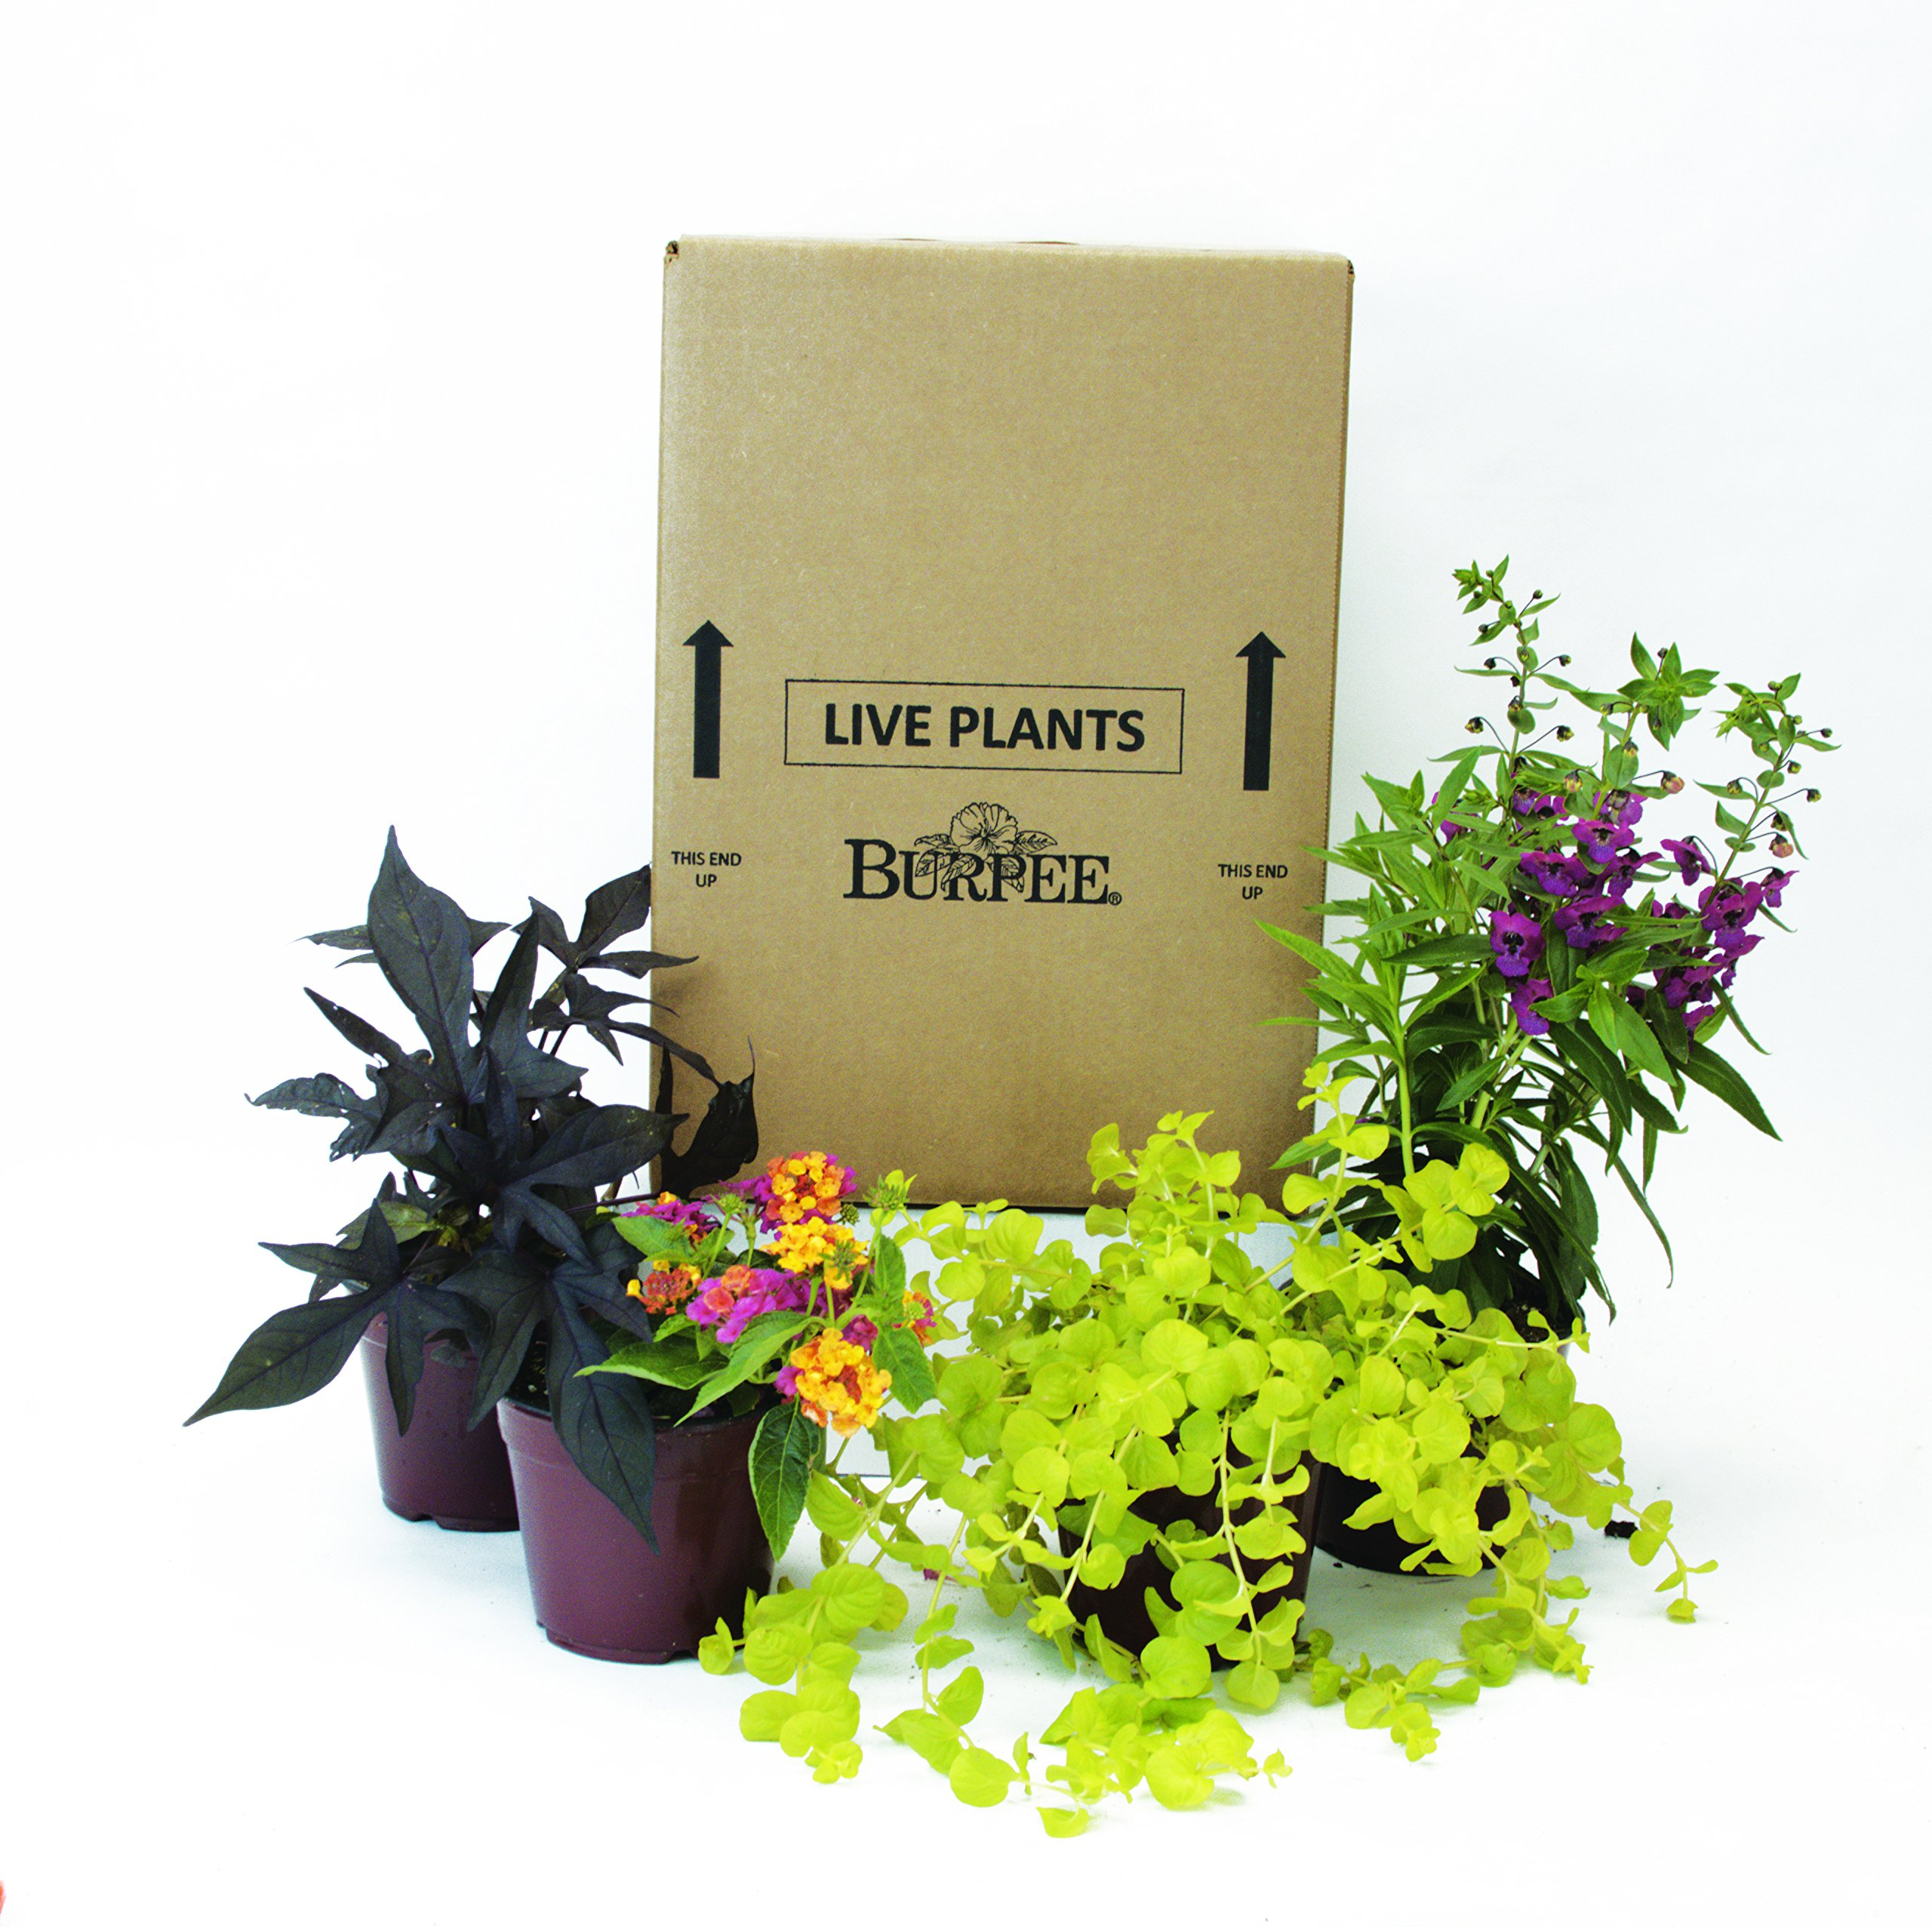 Burpee Combo 'Paradise' - Create Instant Colorful Container Gardens with Eight 4 in. pots by Burpee (Image #1)